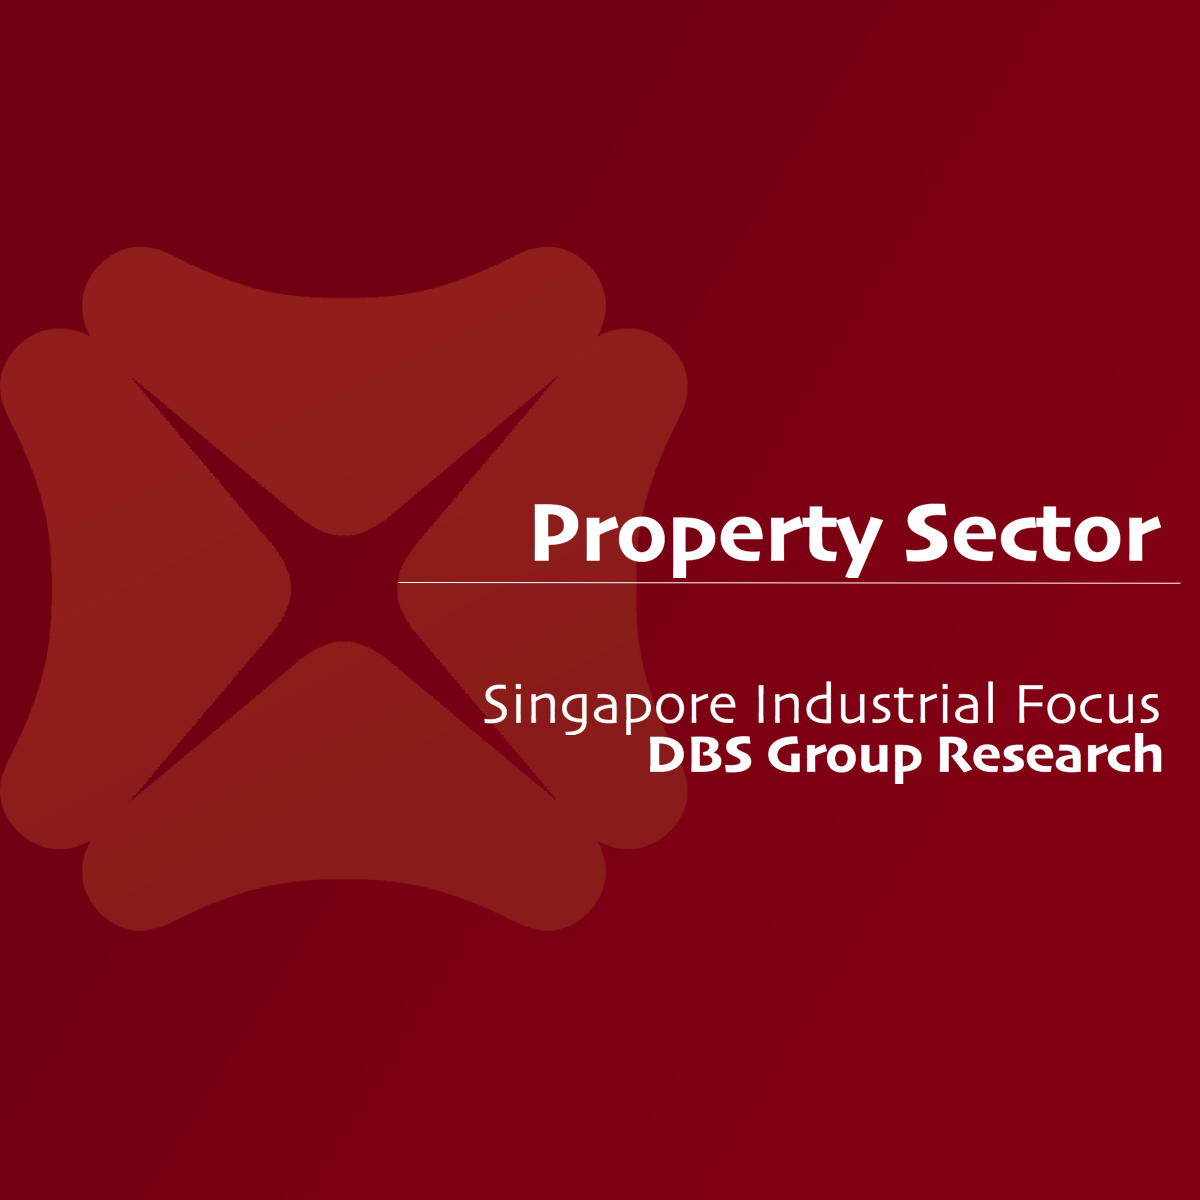 Singapore Property Stocks - DBS Vickers 2018-03-20: Catching The Fever